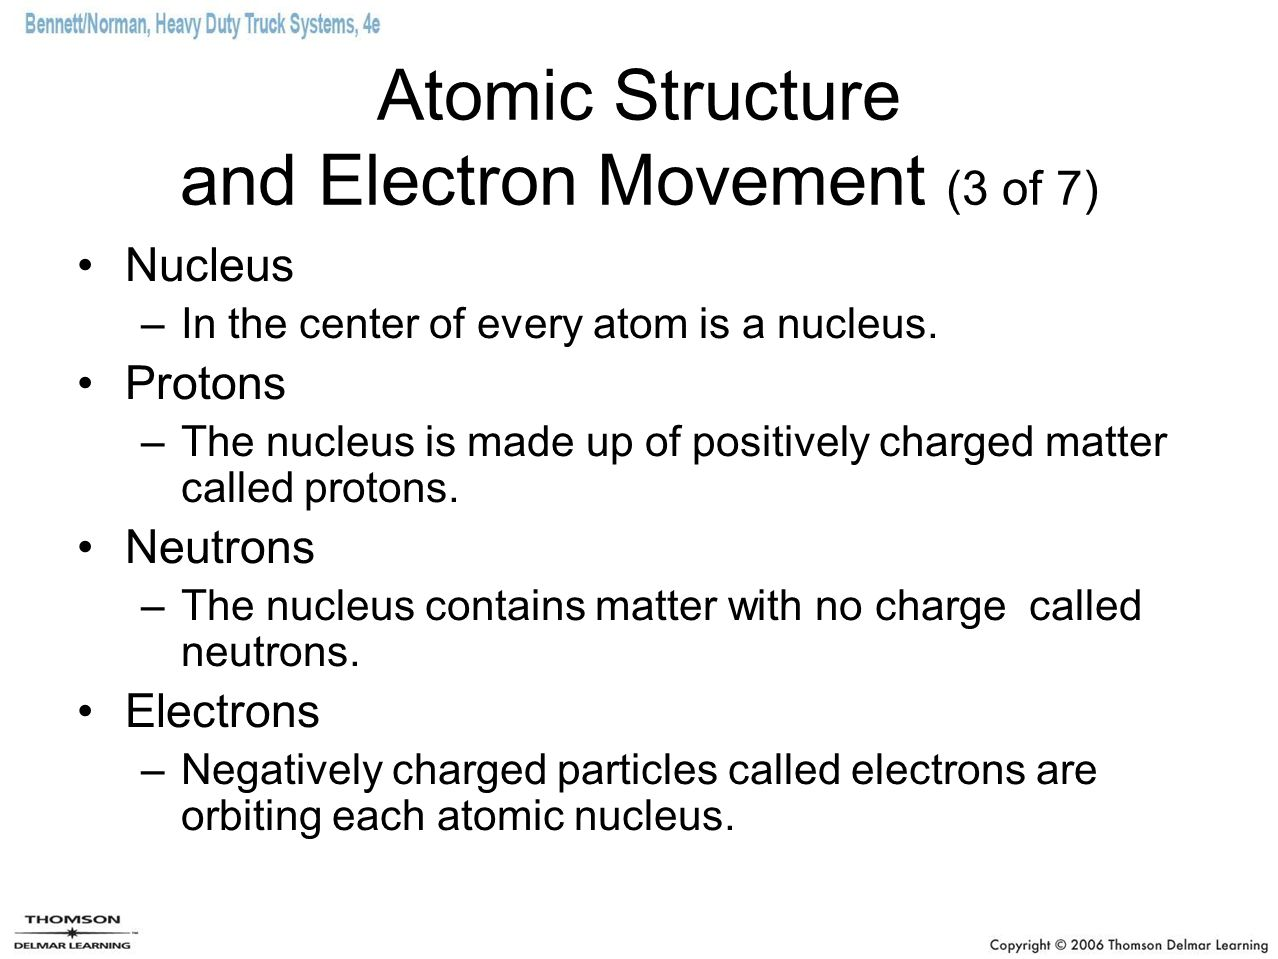 Atomic Structure and Electron Movement (3 of 7)